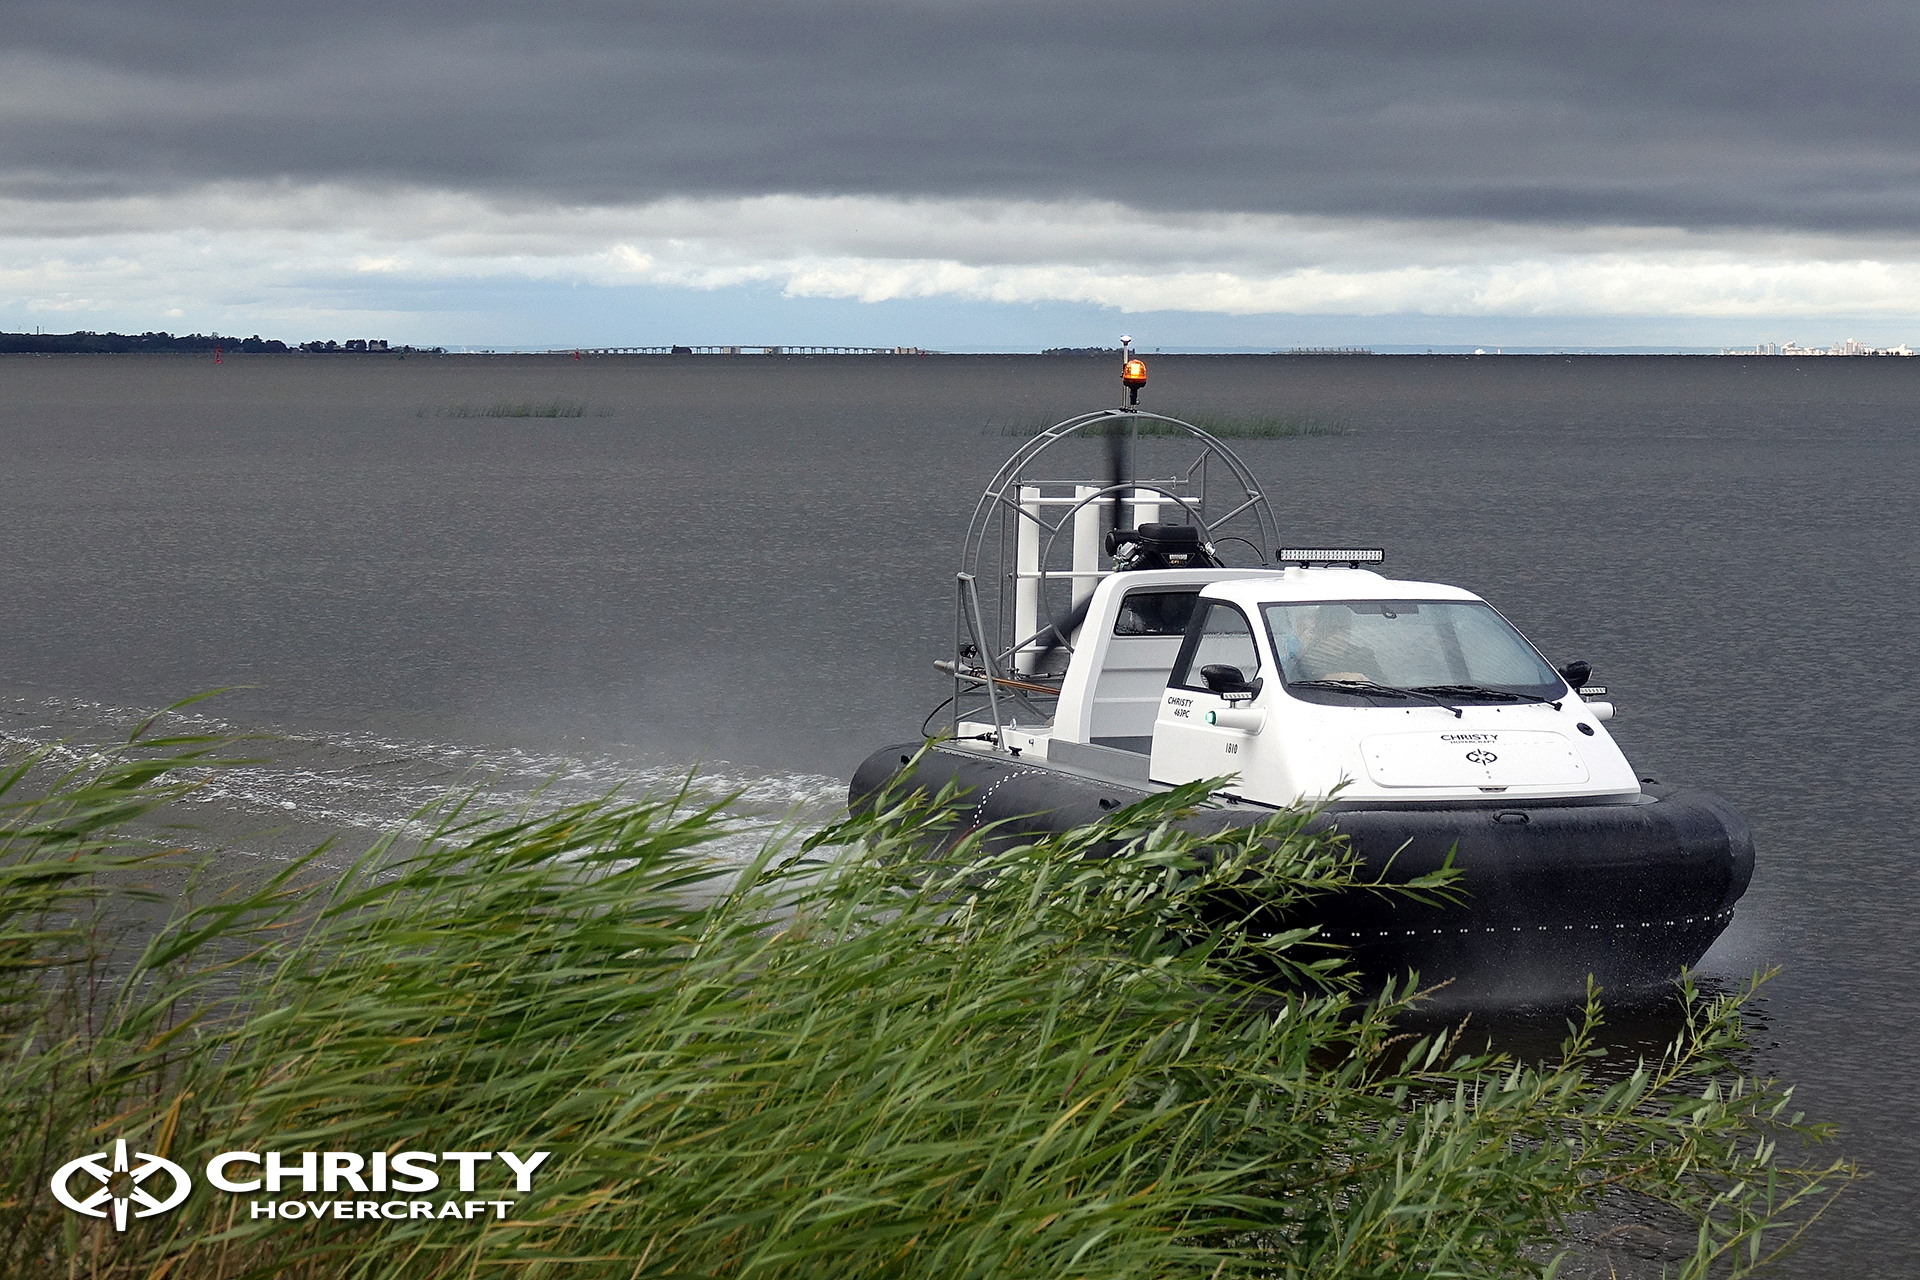 Hovercraft Christy 463 PC in Storm 290618 16.jpg | фото №14